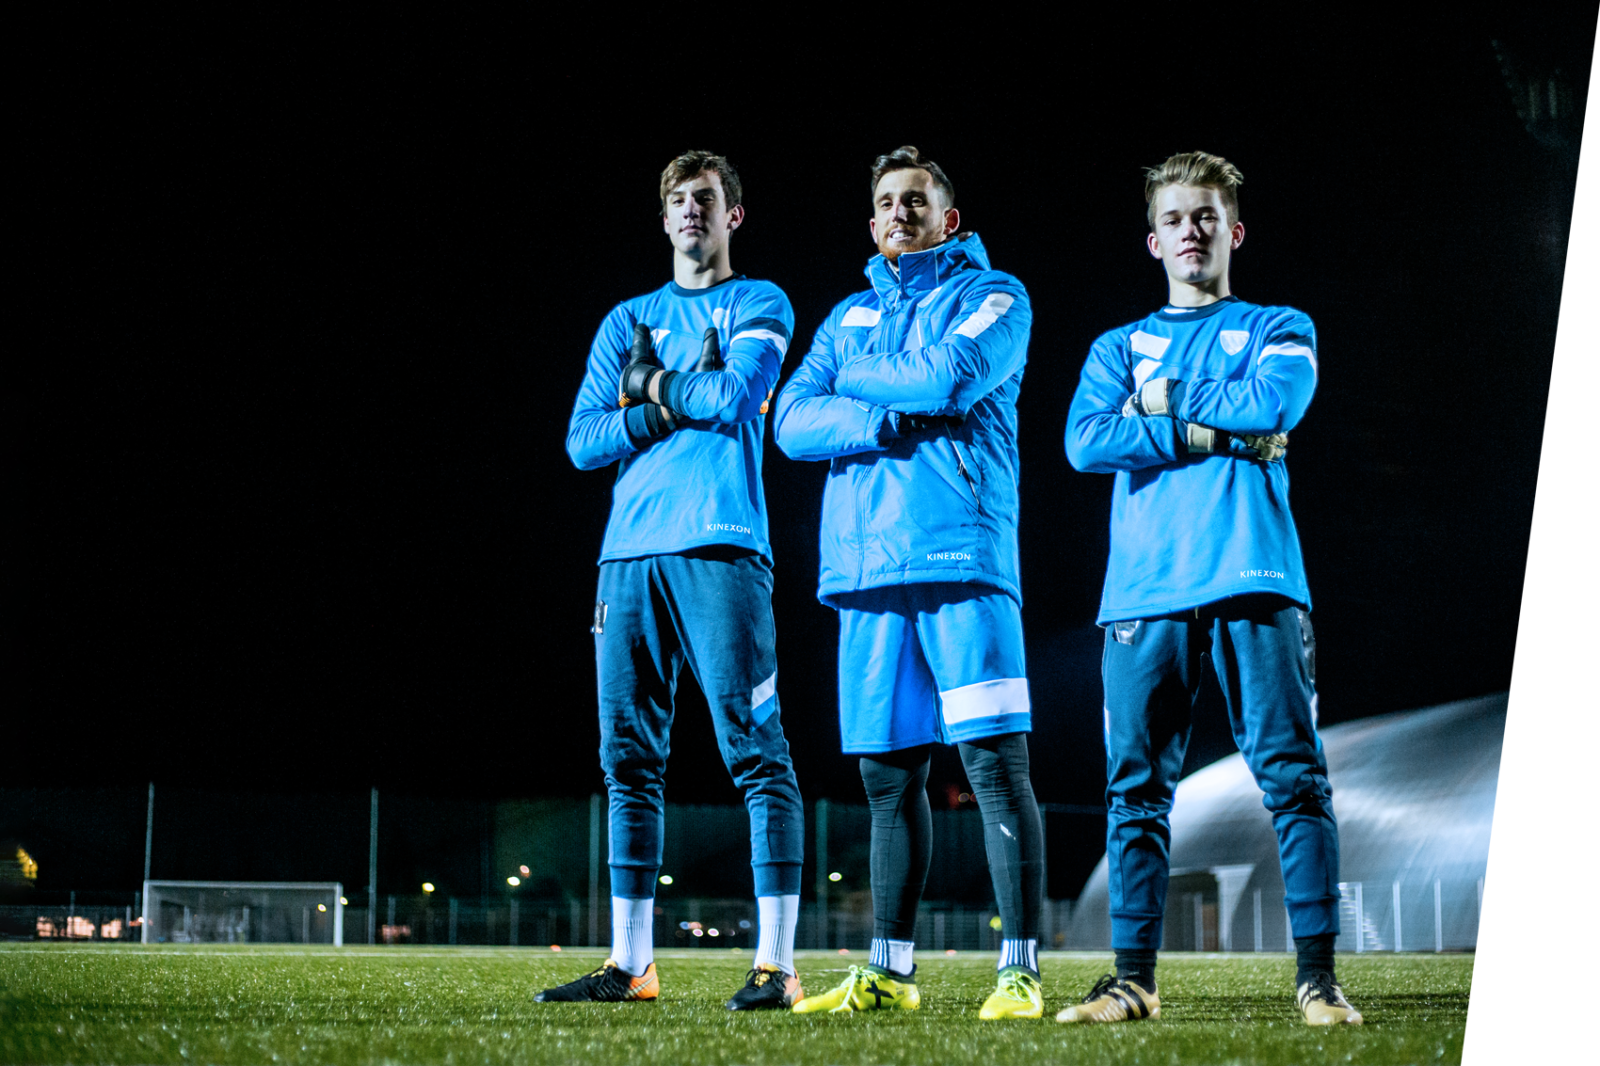 Goalkeepers and their coaches on football field